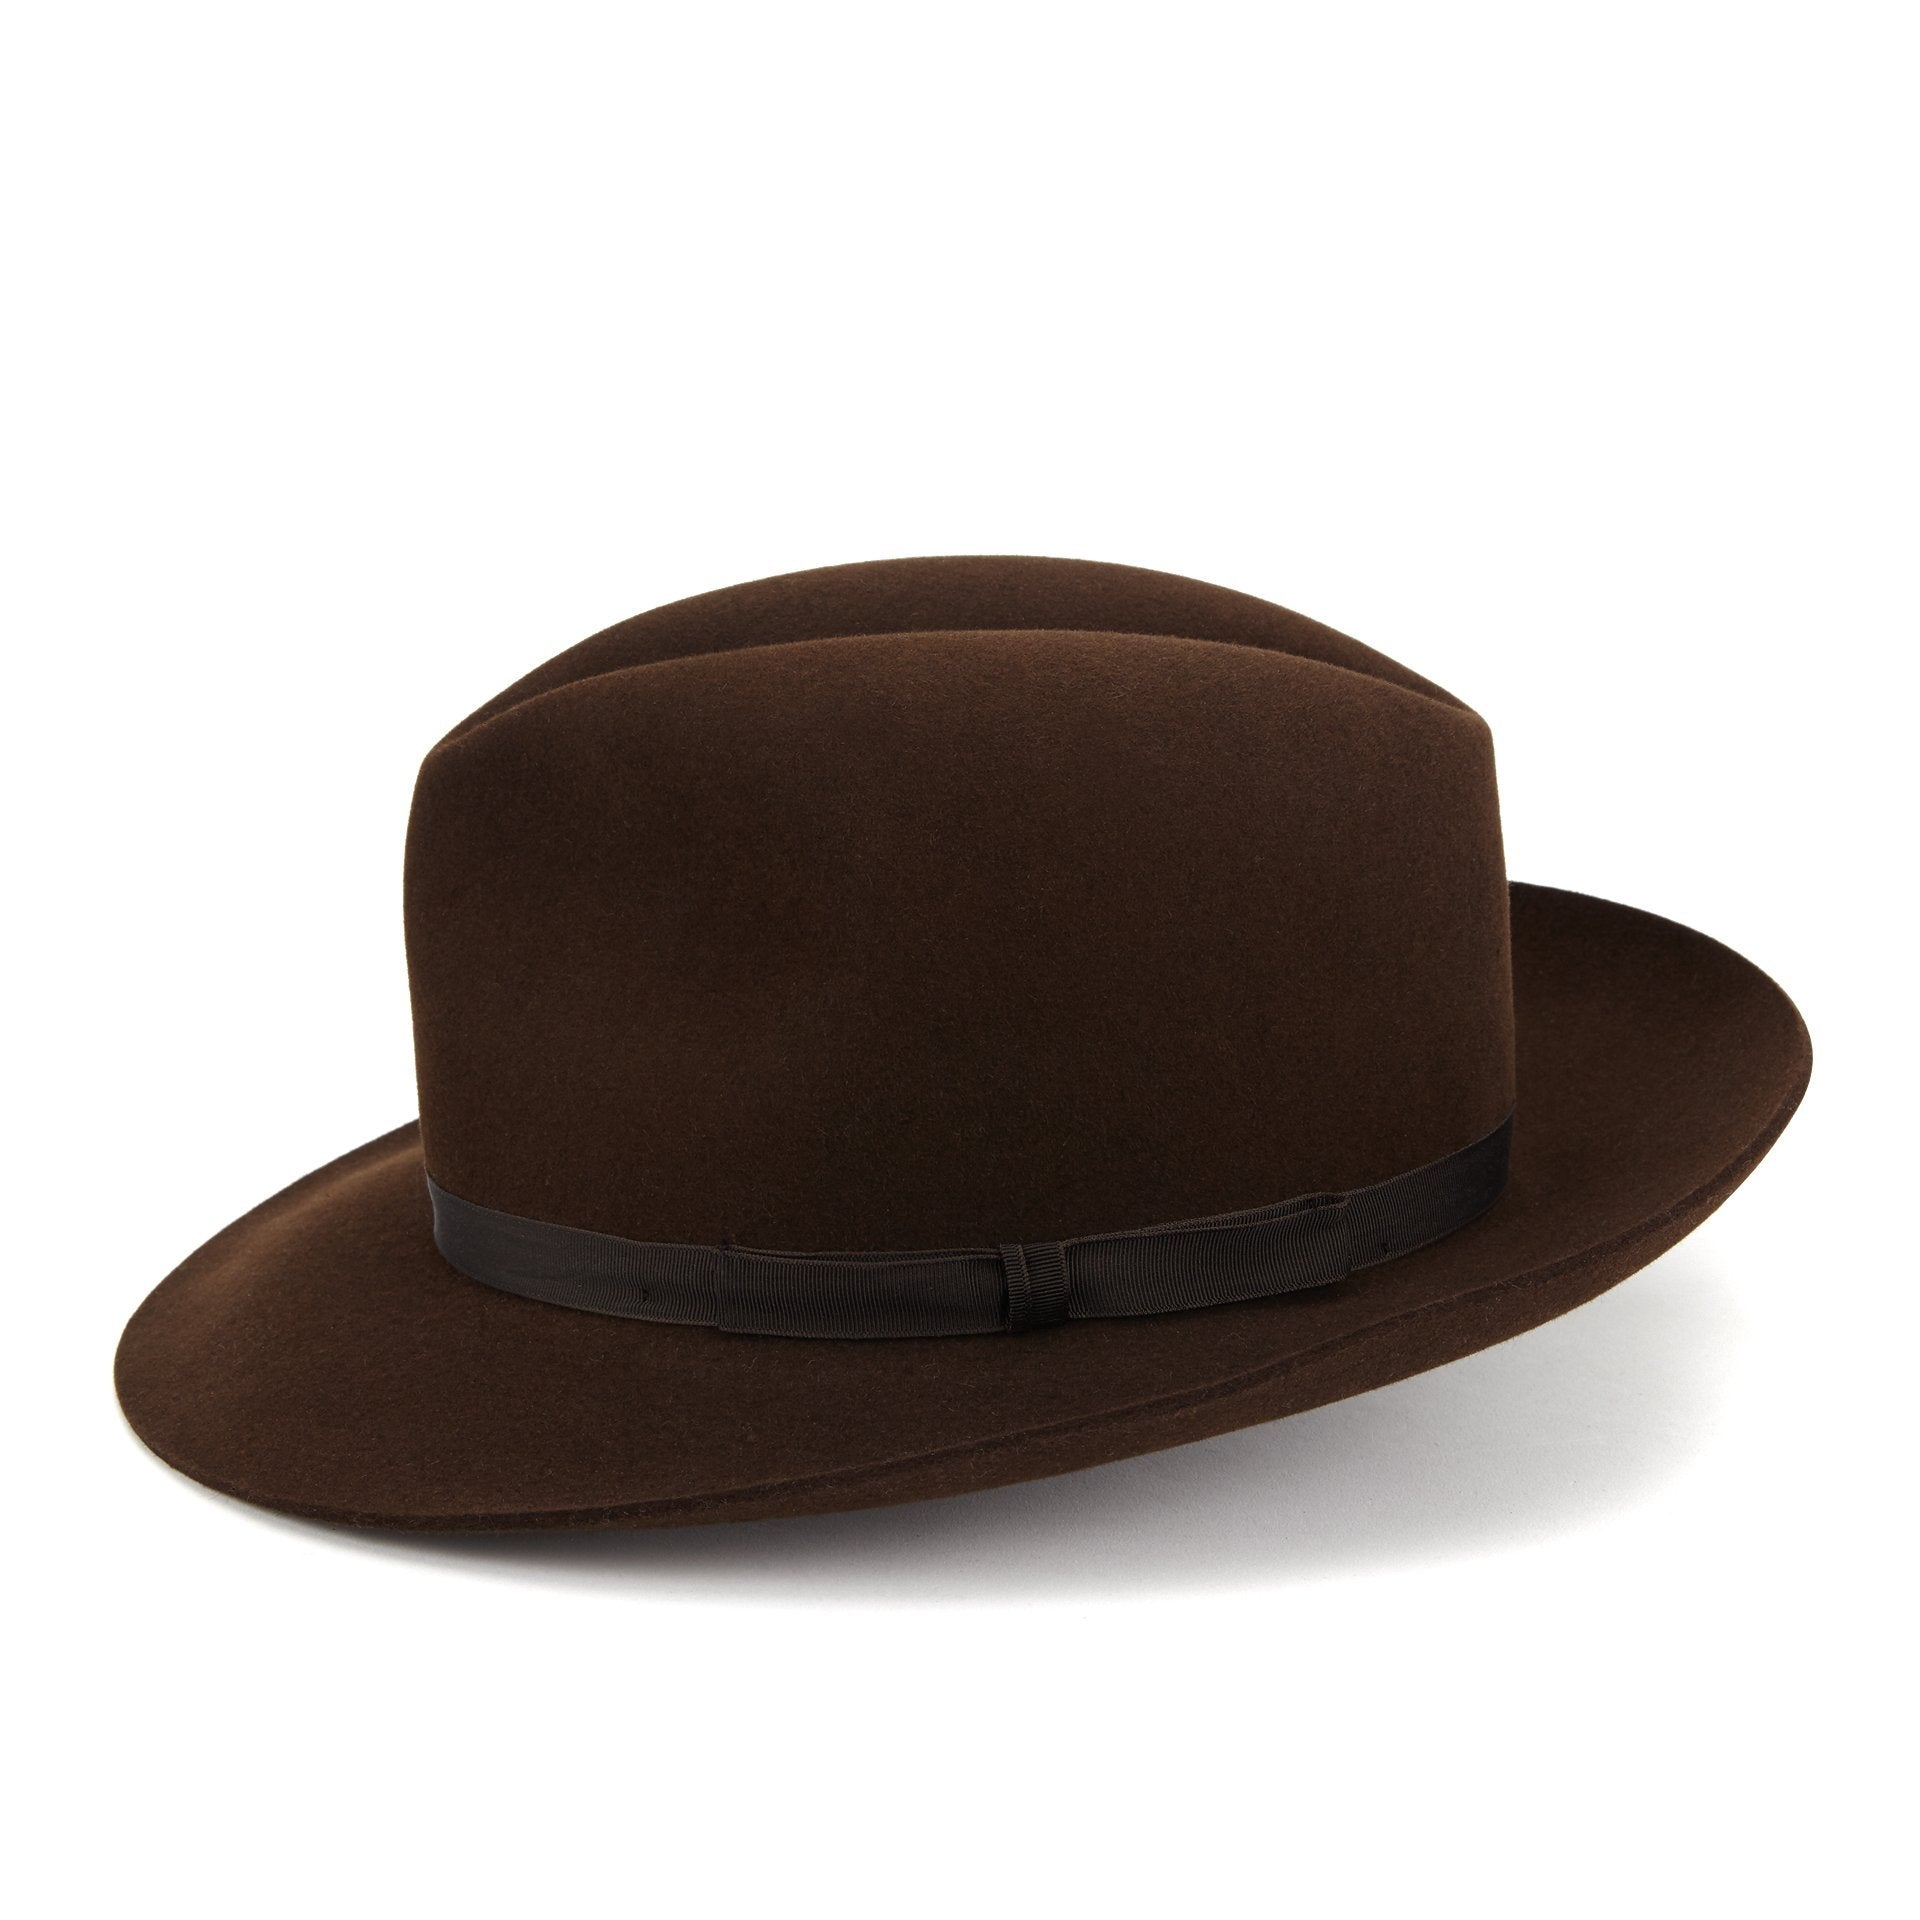 York fedora - Fedoras & homburgs - Lock & Co. Hatters London UK